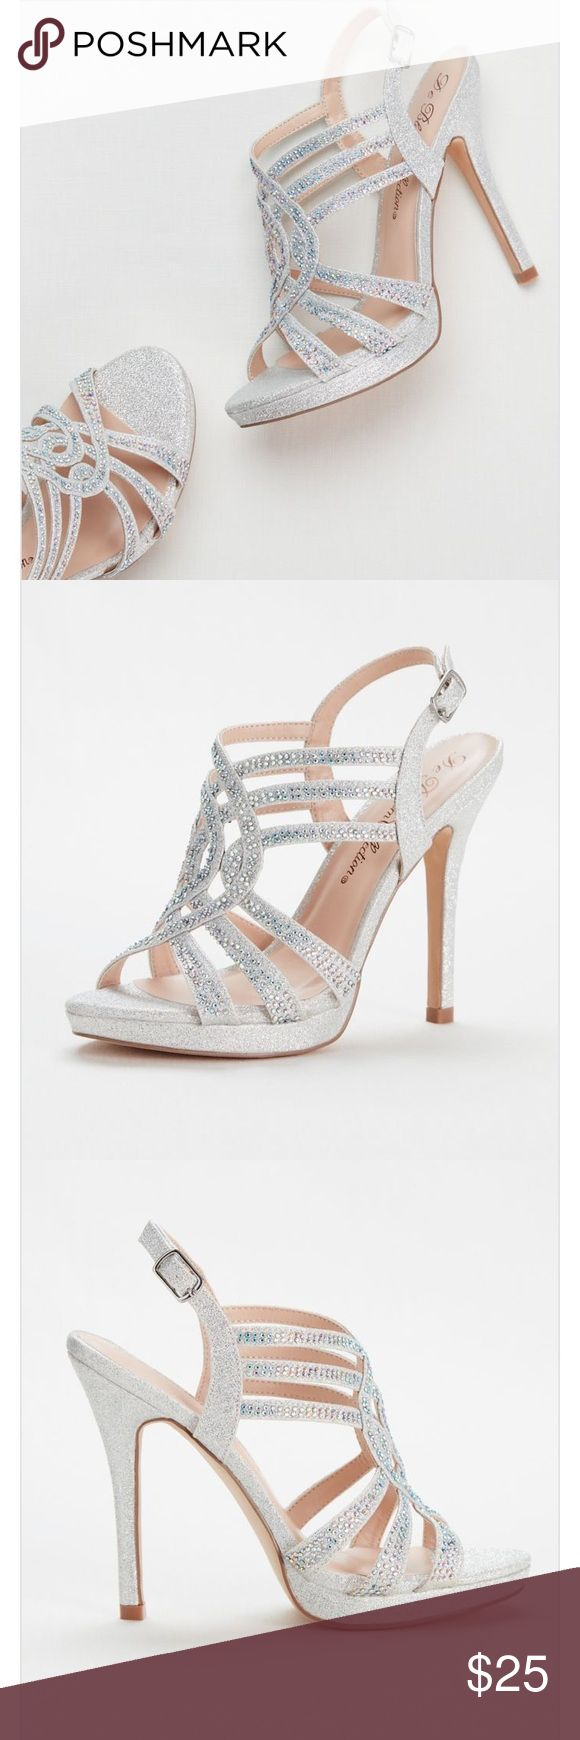 """Davids Bridal Strappy Crystal Platform Heels PROM Size 7. Only worn once as a bridesmaid in a wedding. The heels got sunken in the grass a bit but other than that they are perfect! Style: VIVA2 Instantly spice up your party look with these high-shining strappy platform sandals! These high heel strappy platform sandals are perfectly embellished with tiny dazzling crystals. Heel Height - 4.5"""". Fully lined. Imported. David's Bridal Shoes Heels"""